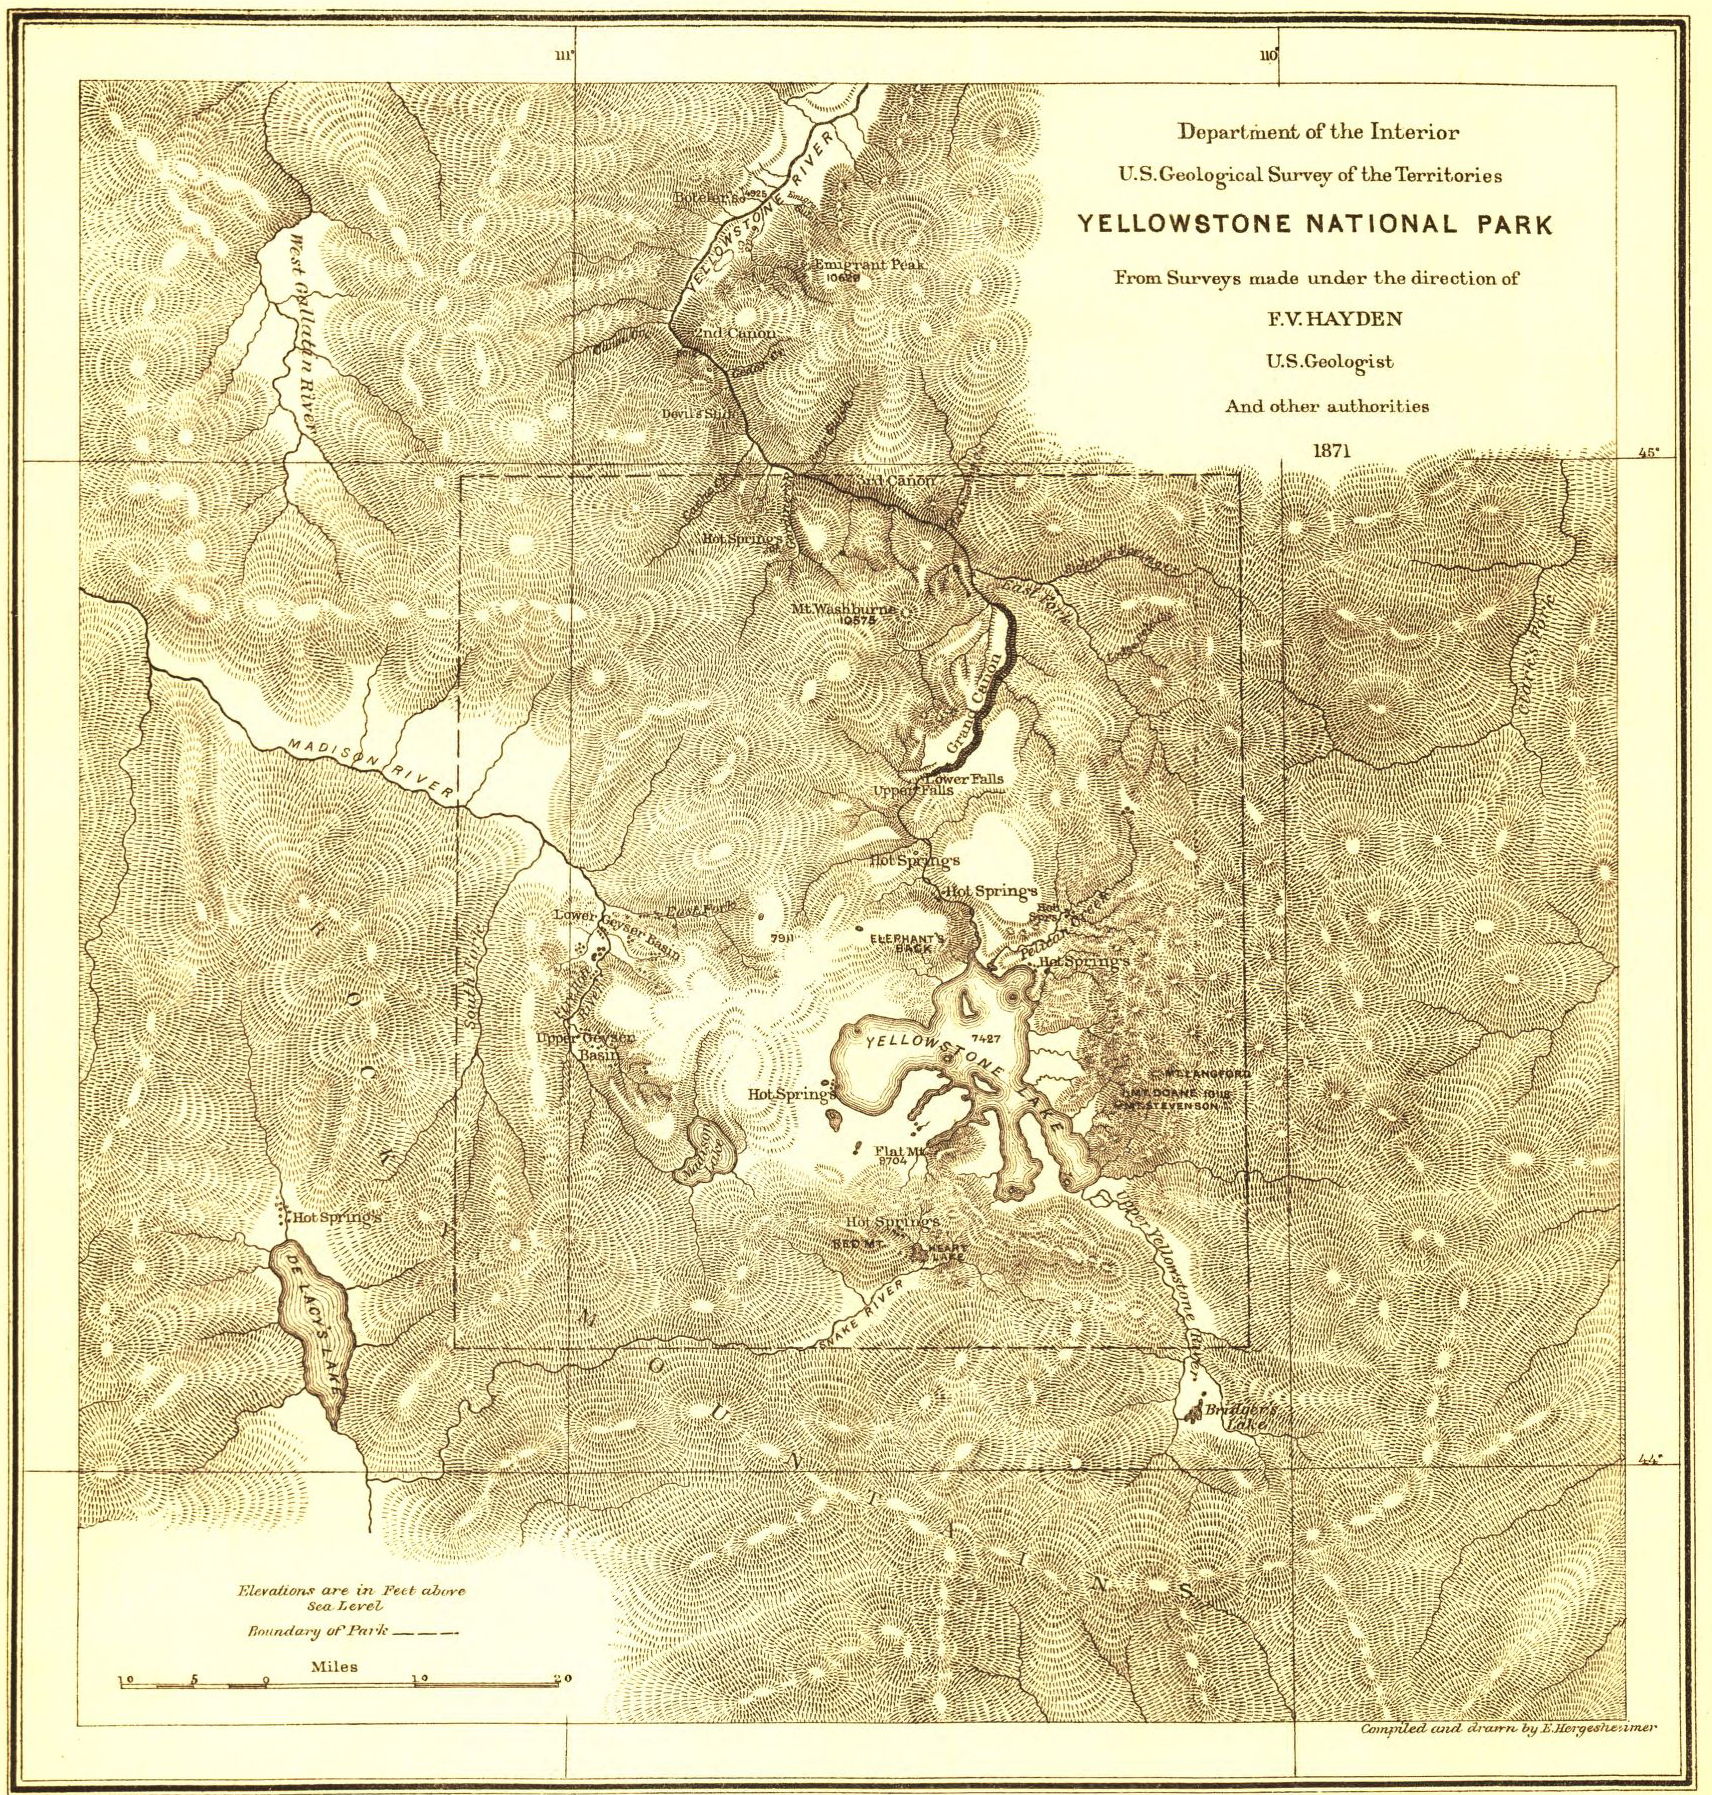 Map of Yellowstone from 1871 survey